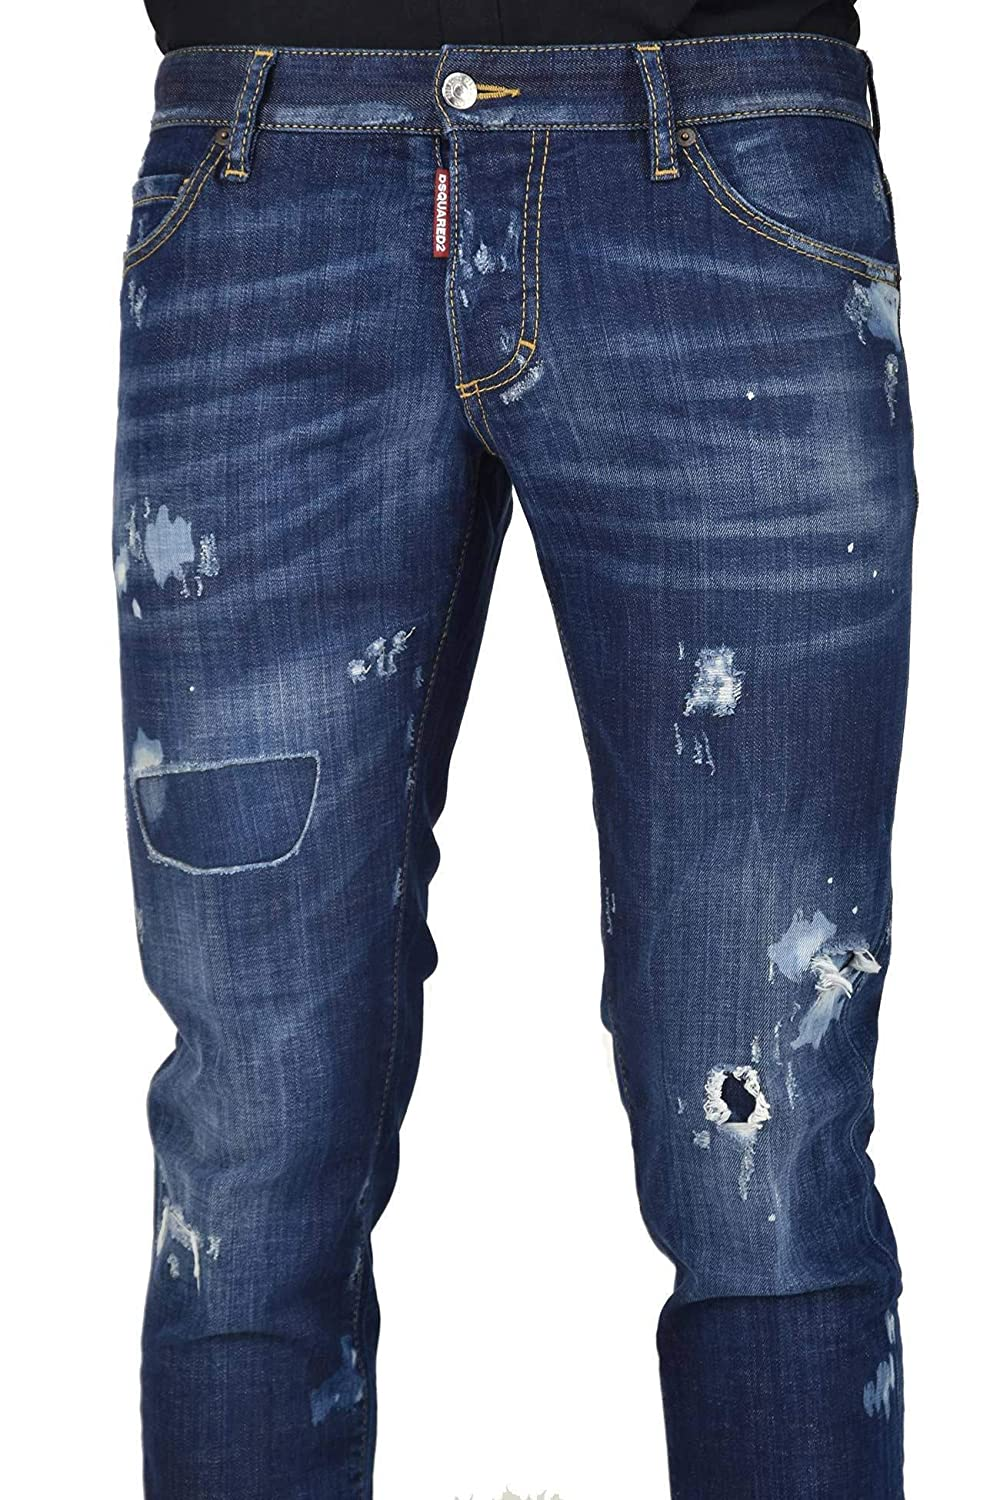 DSquared Jeans S71LB0240 S30342-40(UK) 50(IT) 50(EU)  Amazon.co.uk  Clothing ba8a8ae89a2c